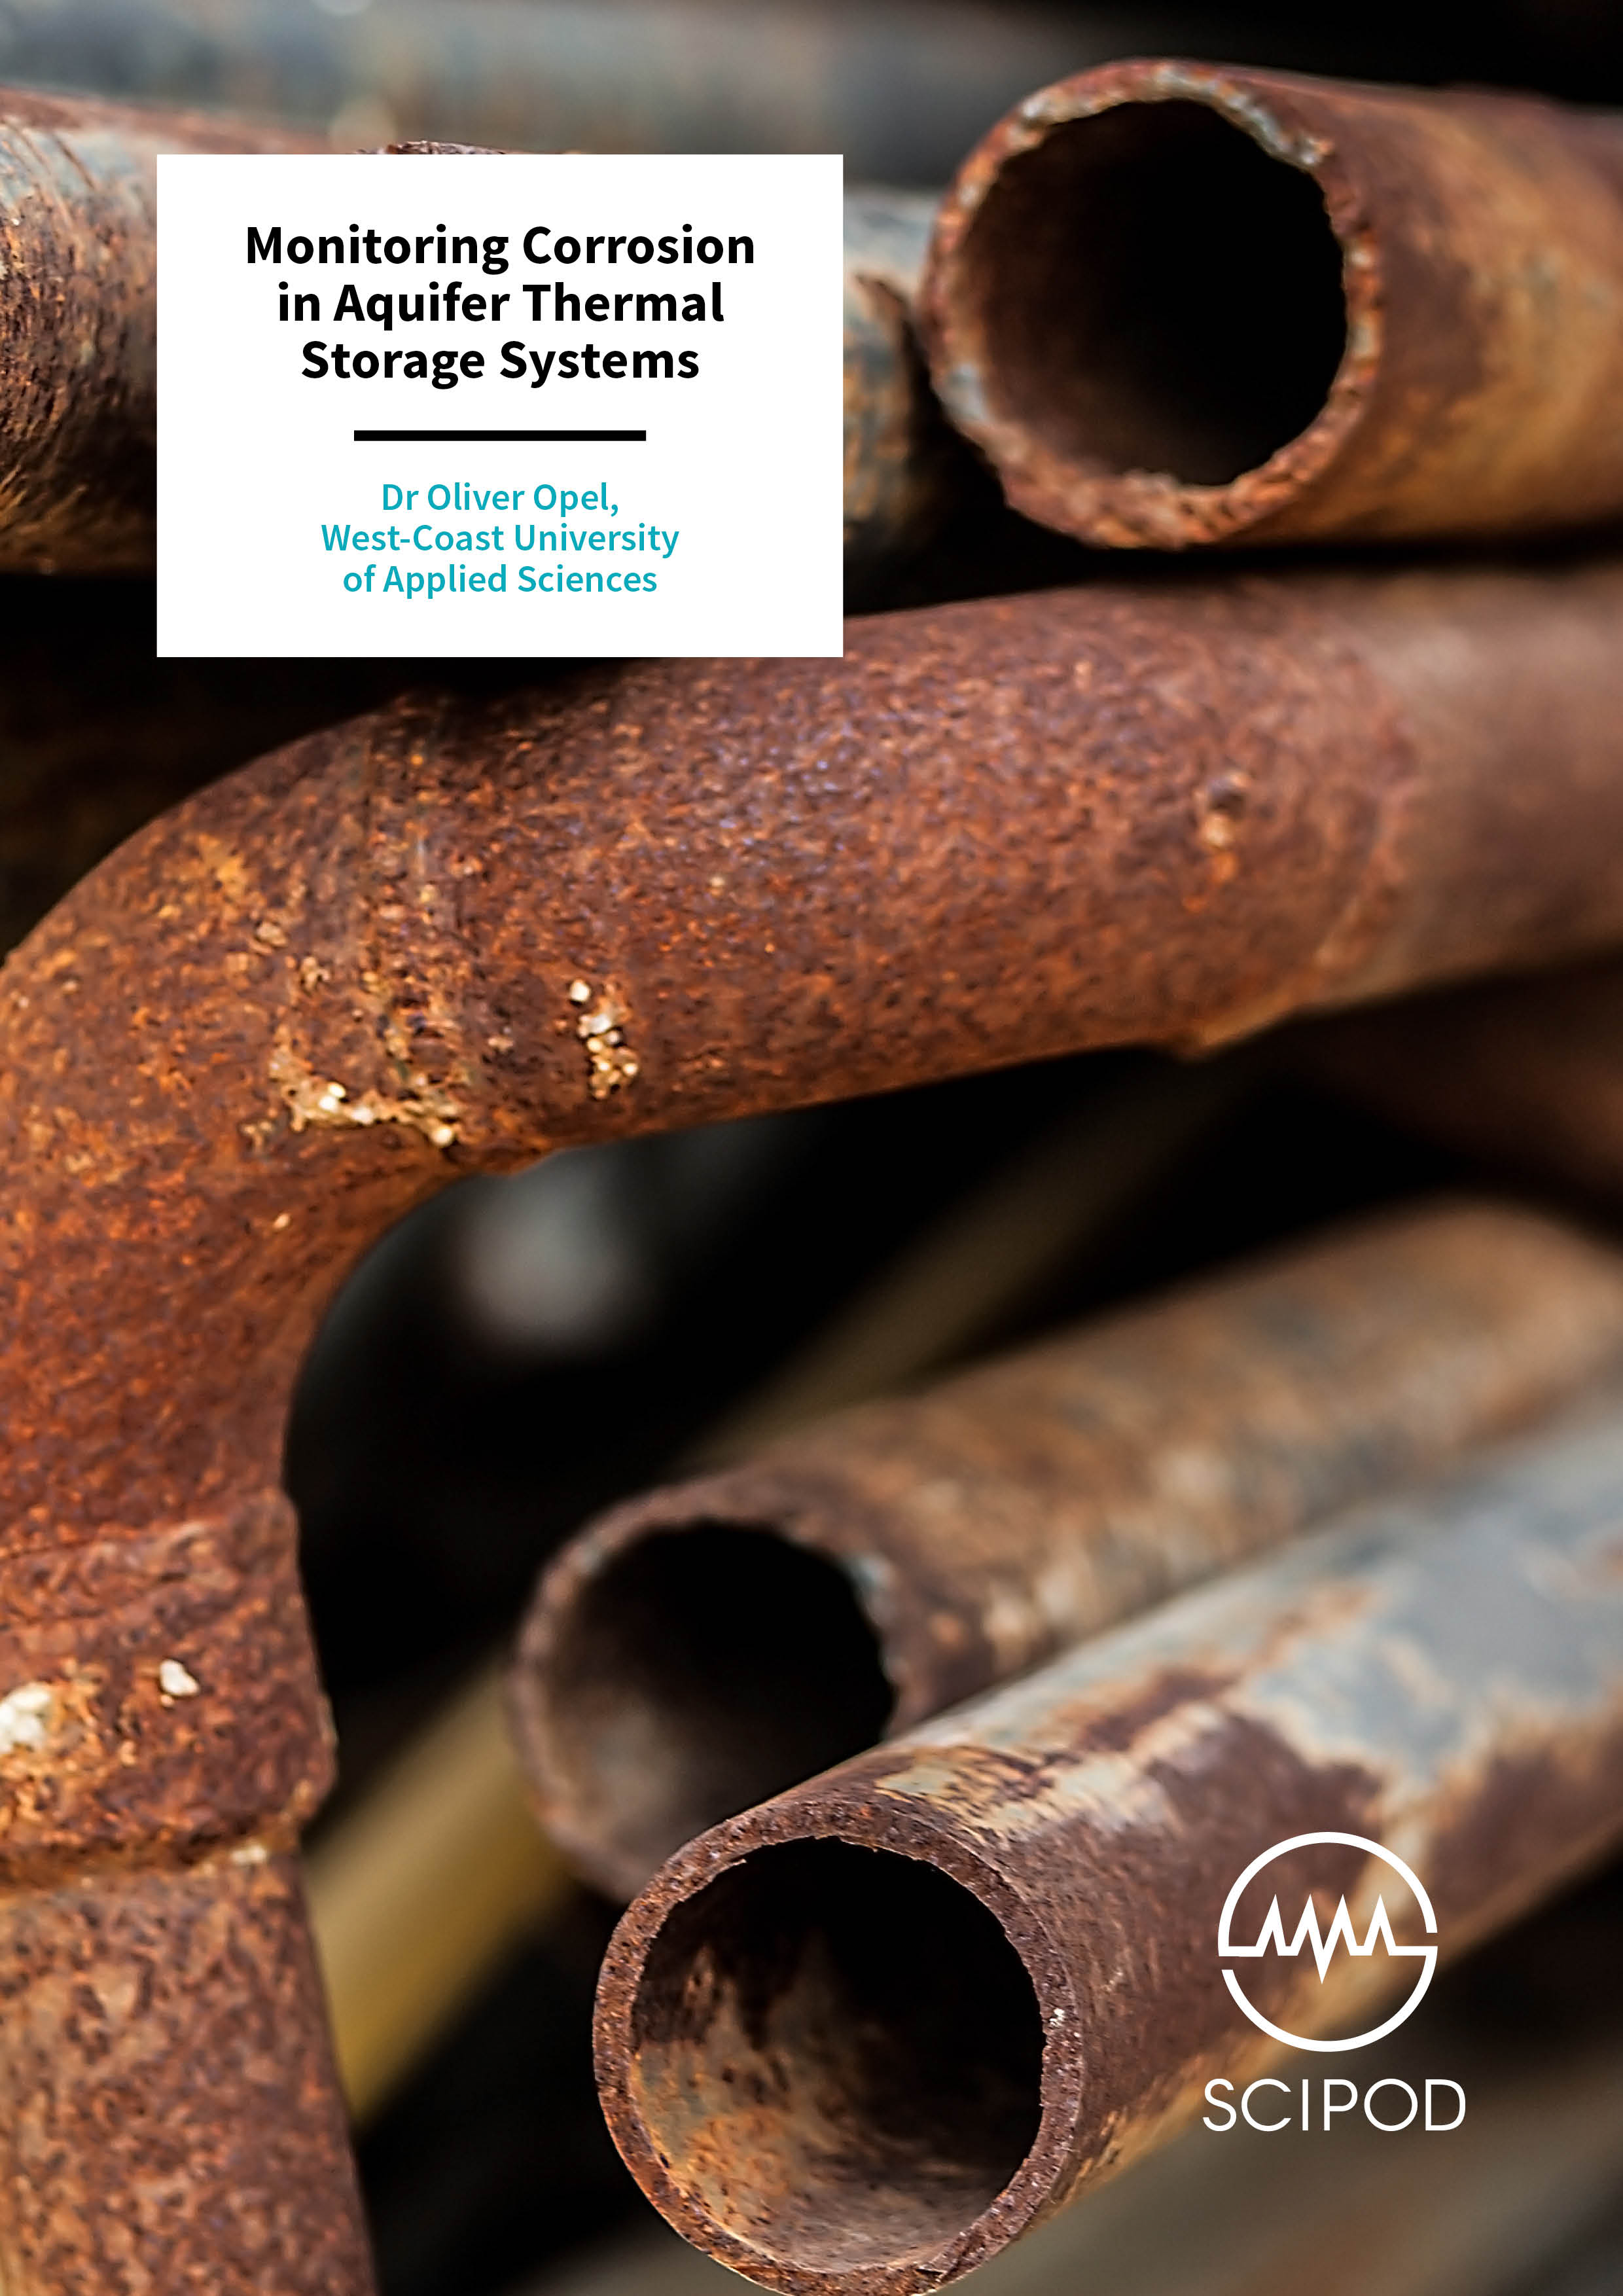 Monitoring Corrosion in Aquifer Thermal Storage Systems – Dr Oliver Opel, University of Applied Sciences Heide Germany